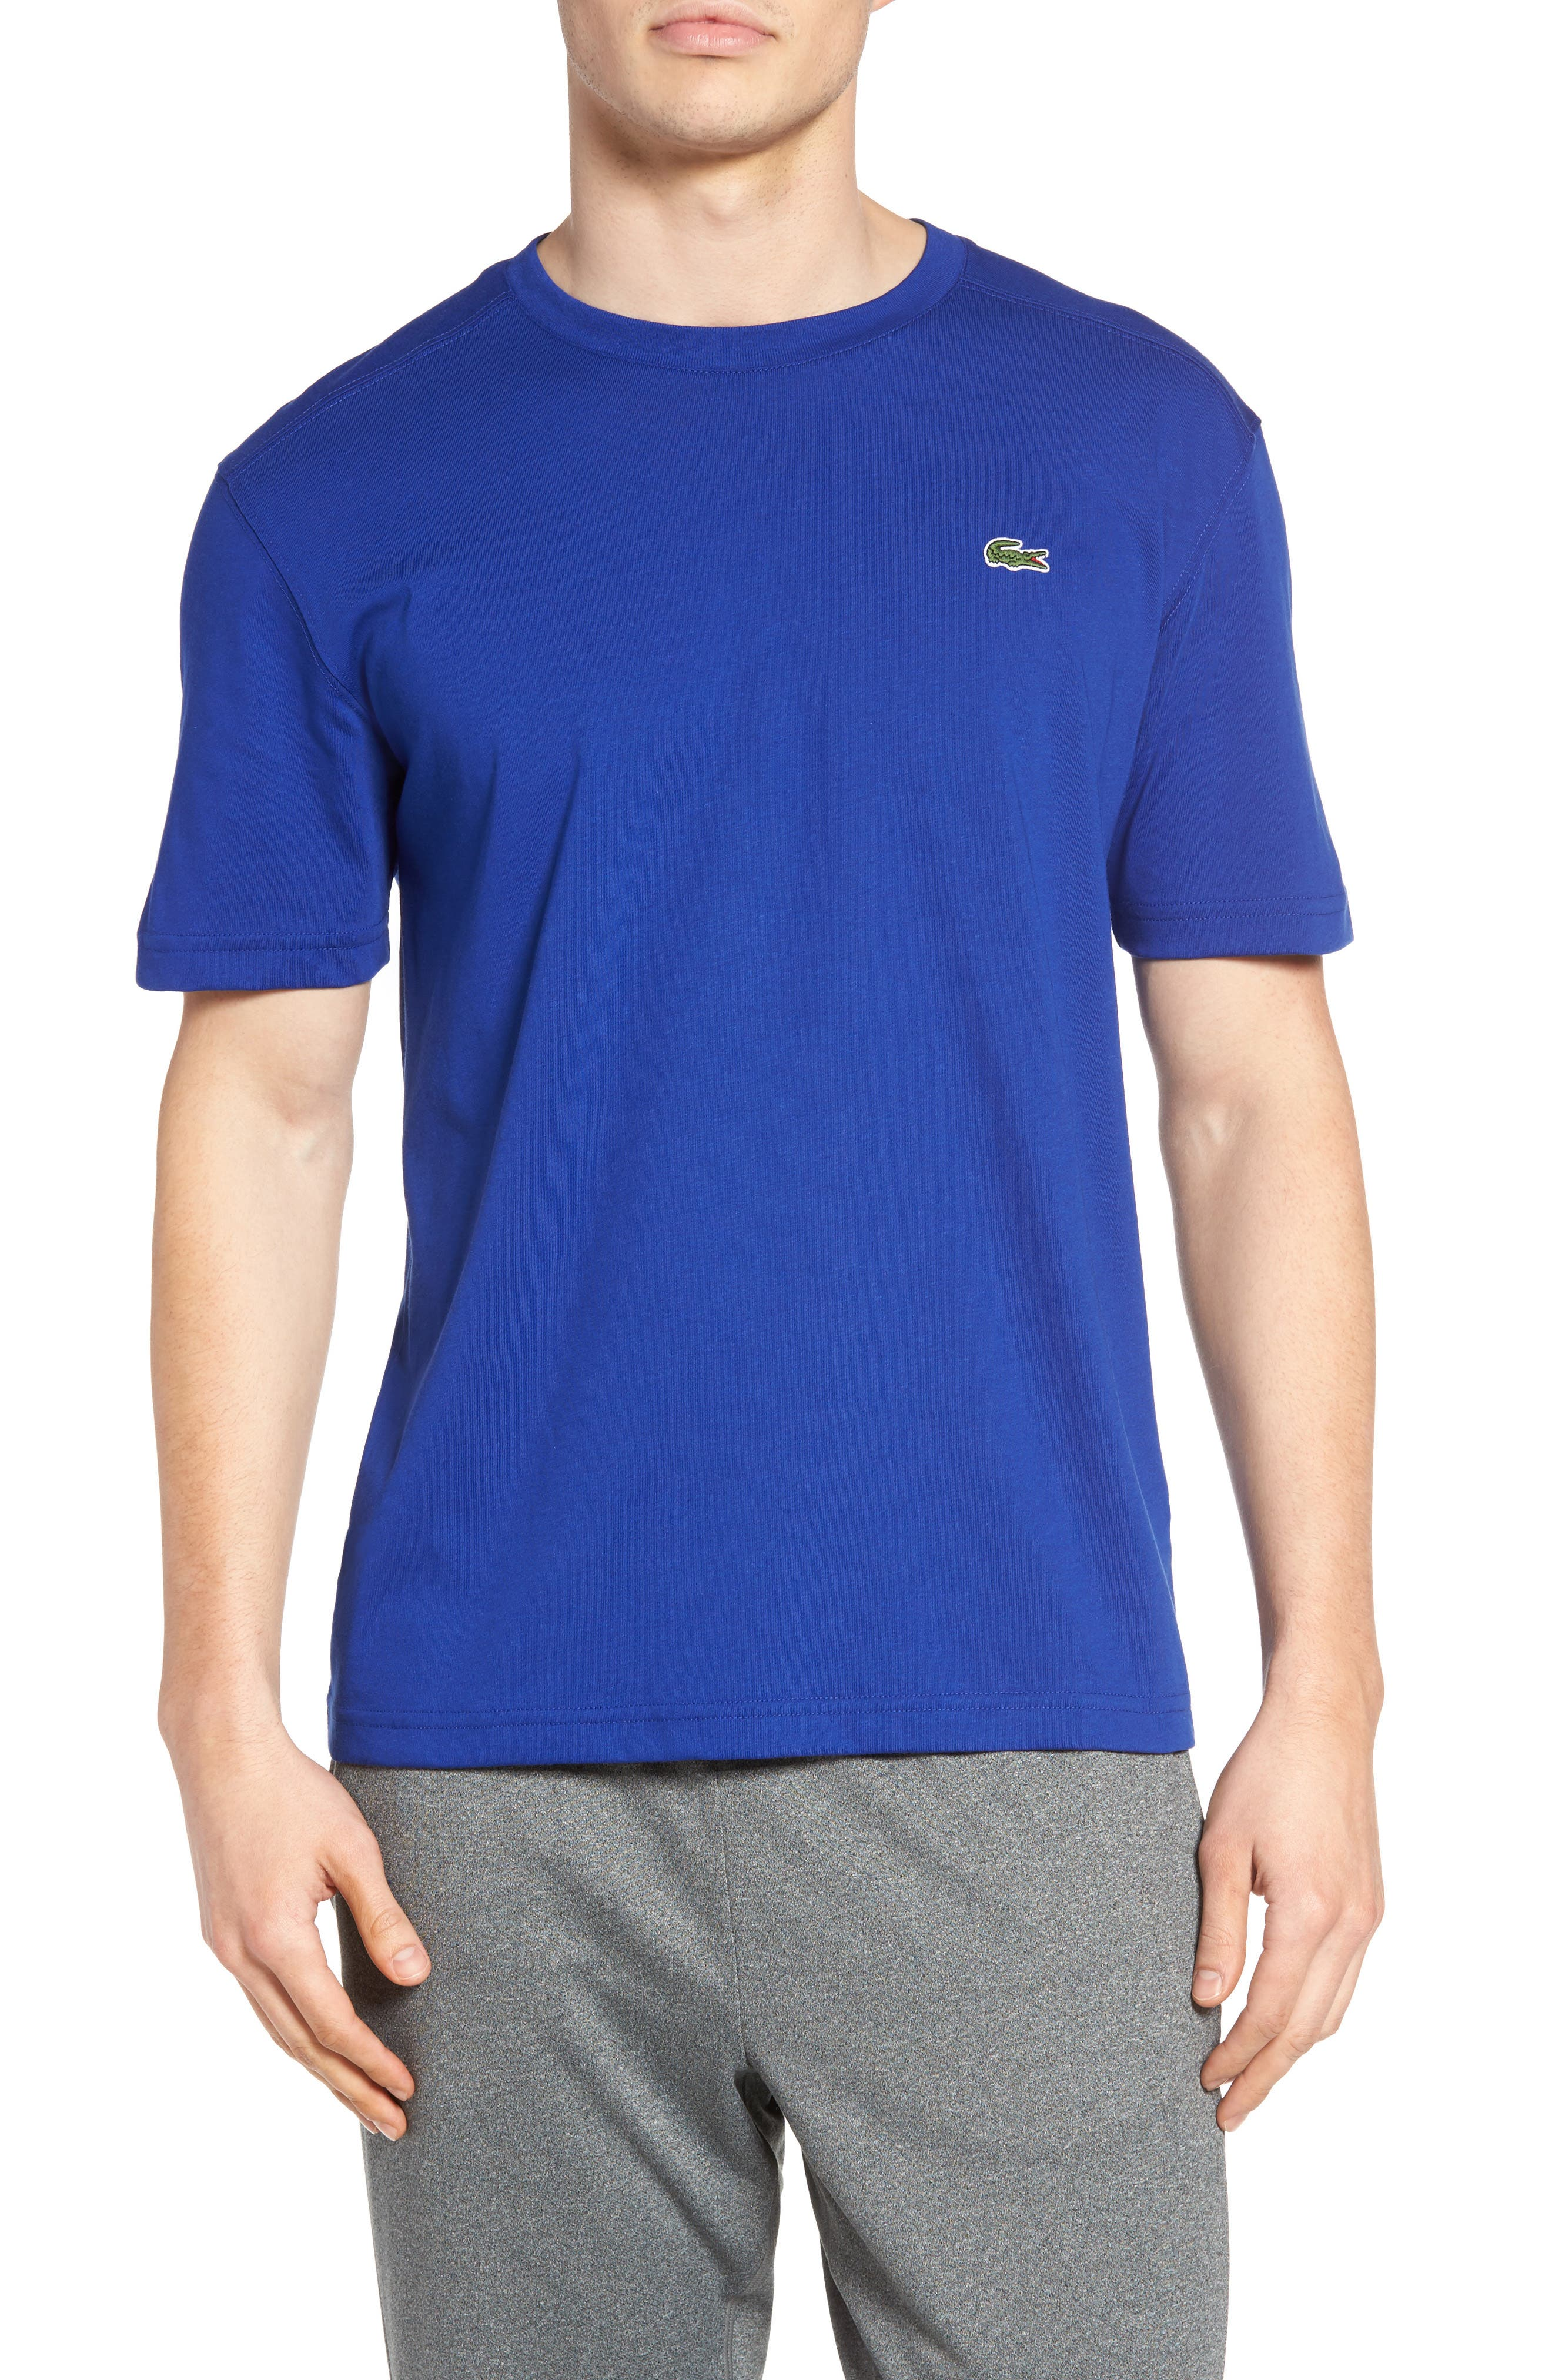 Alternate Image 1 Selected - Lacoste'Sport' Cotton Jersey T-Shirt